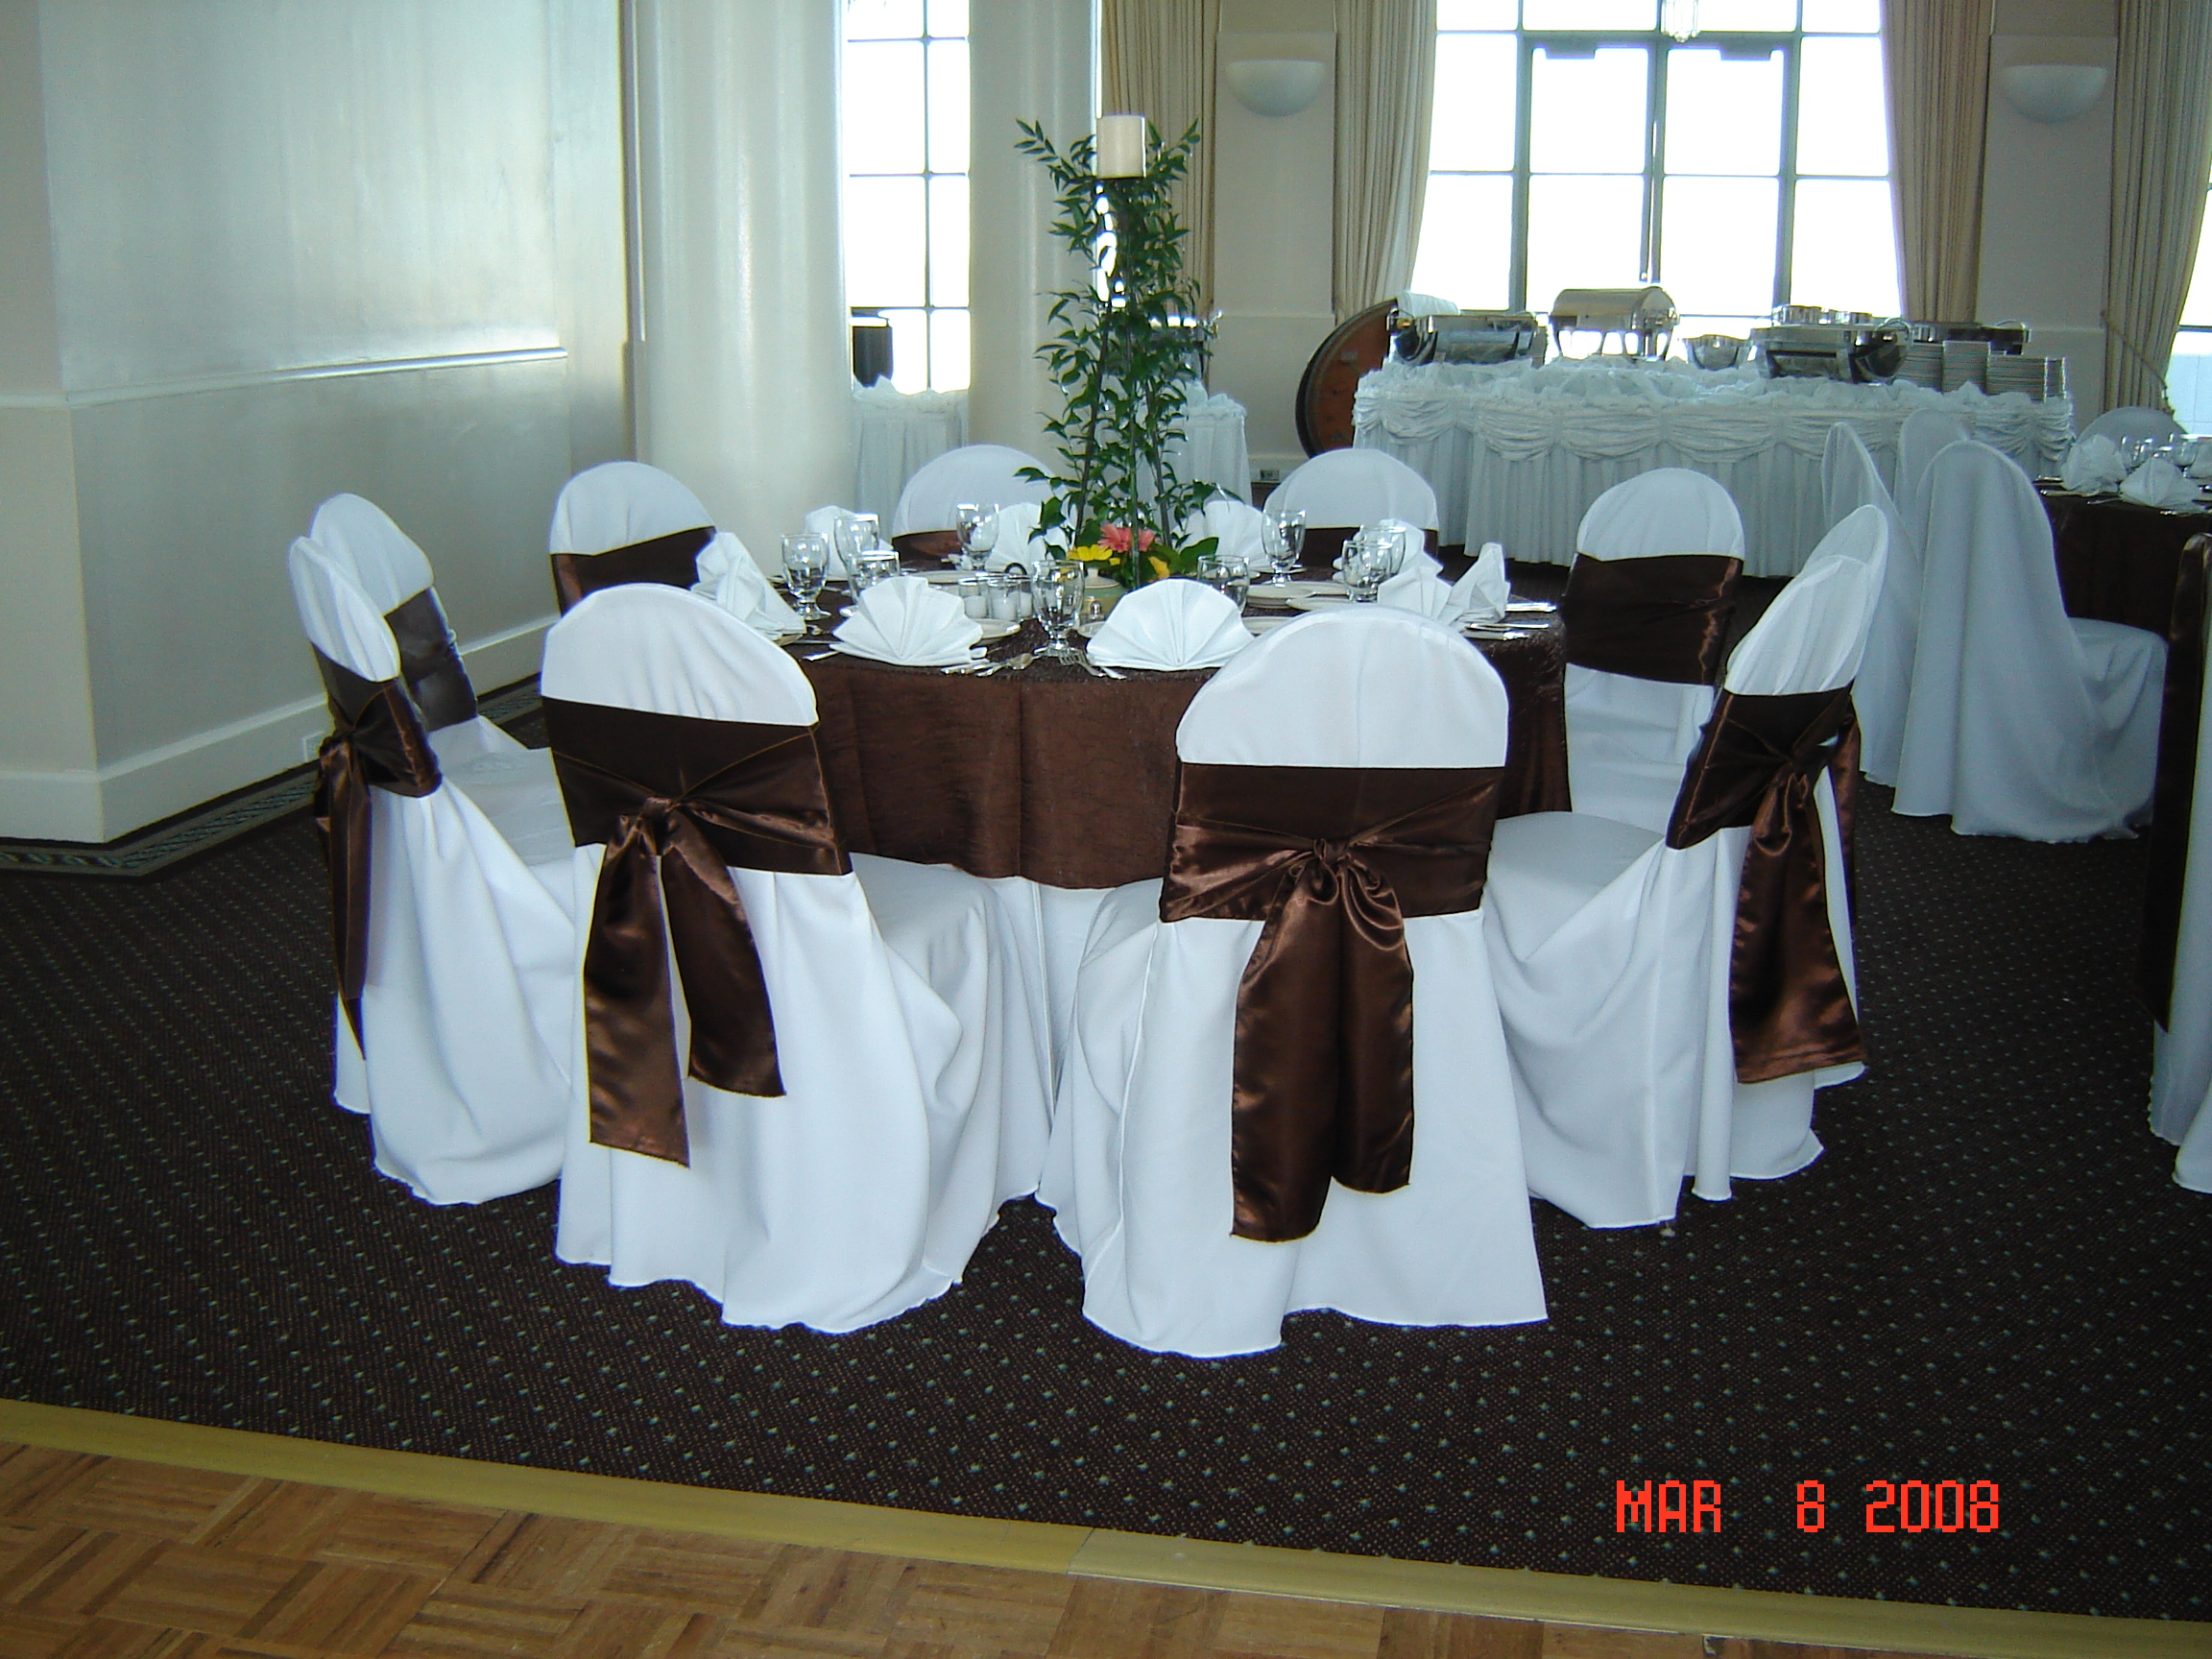 used banquet chair covers wholesale yoga ball unique cheap under 1 rtty1